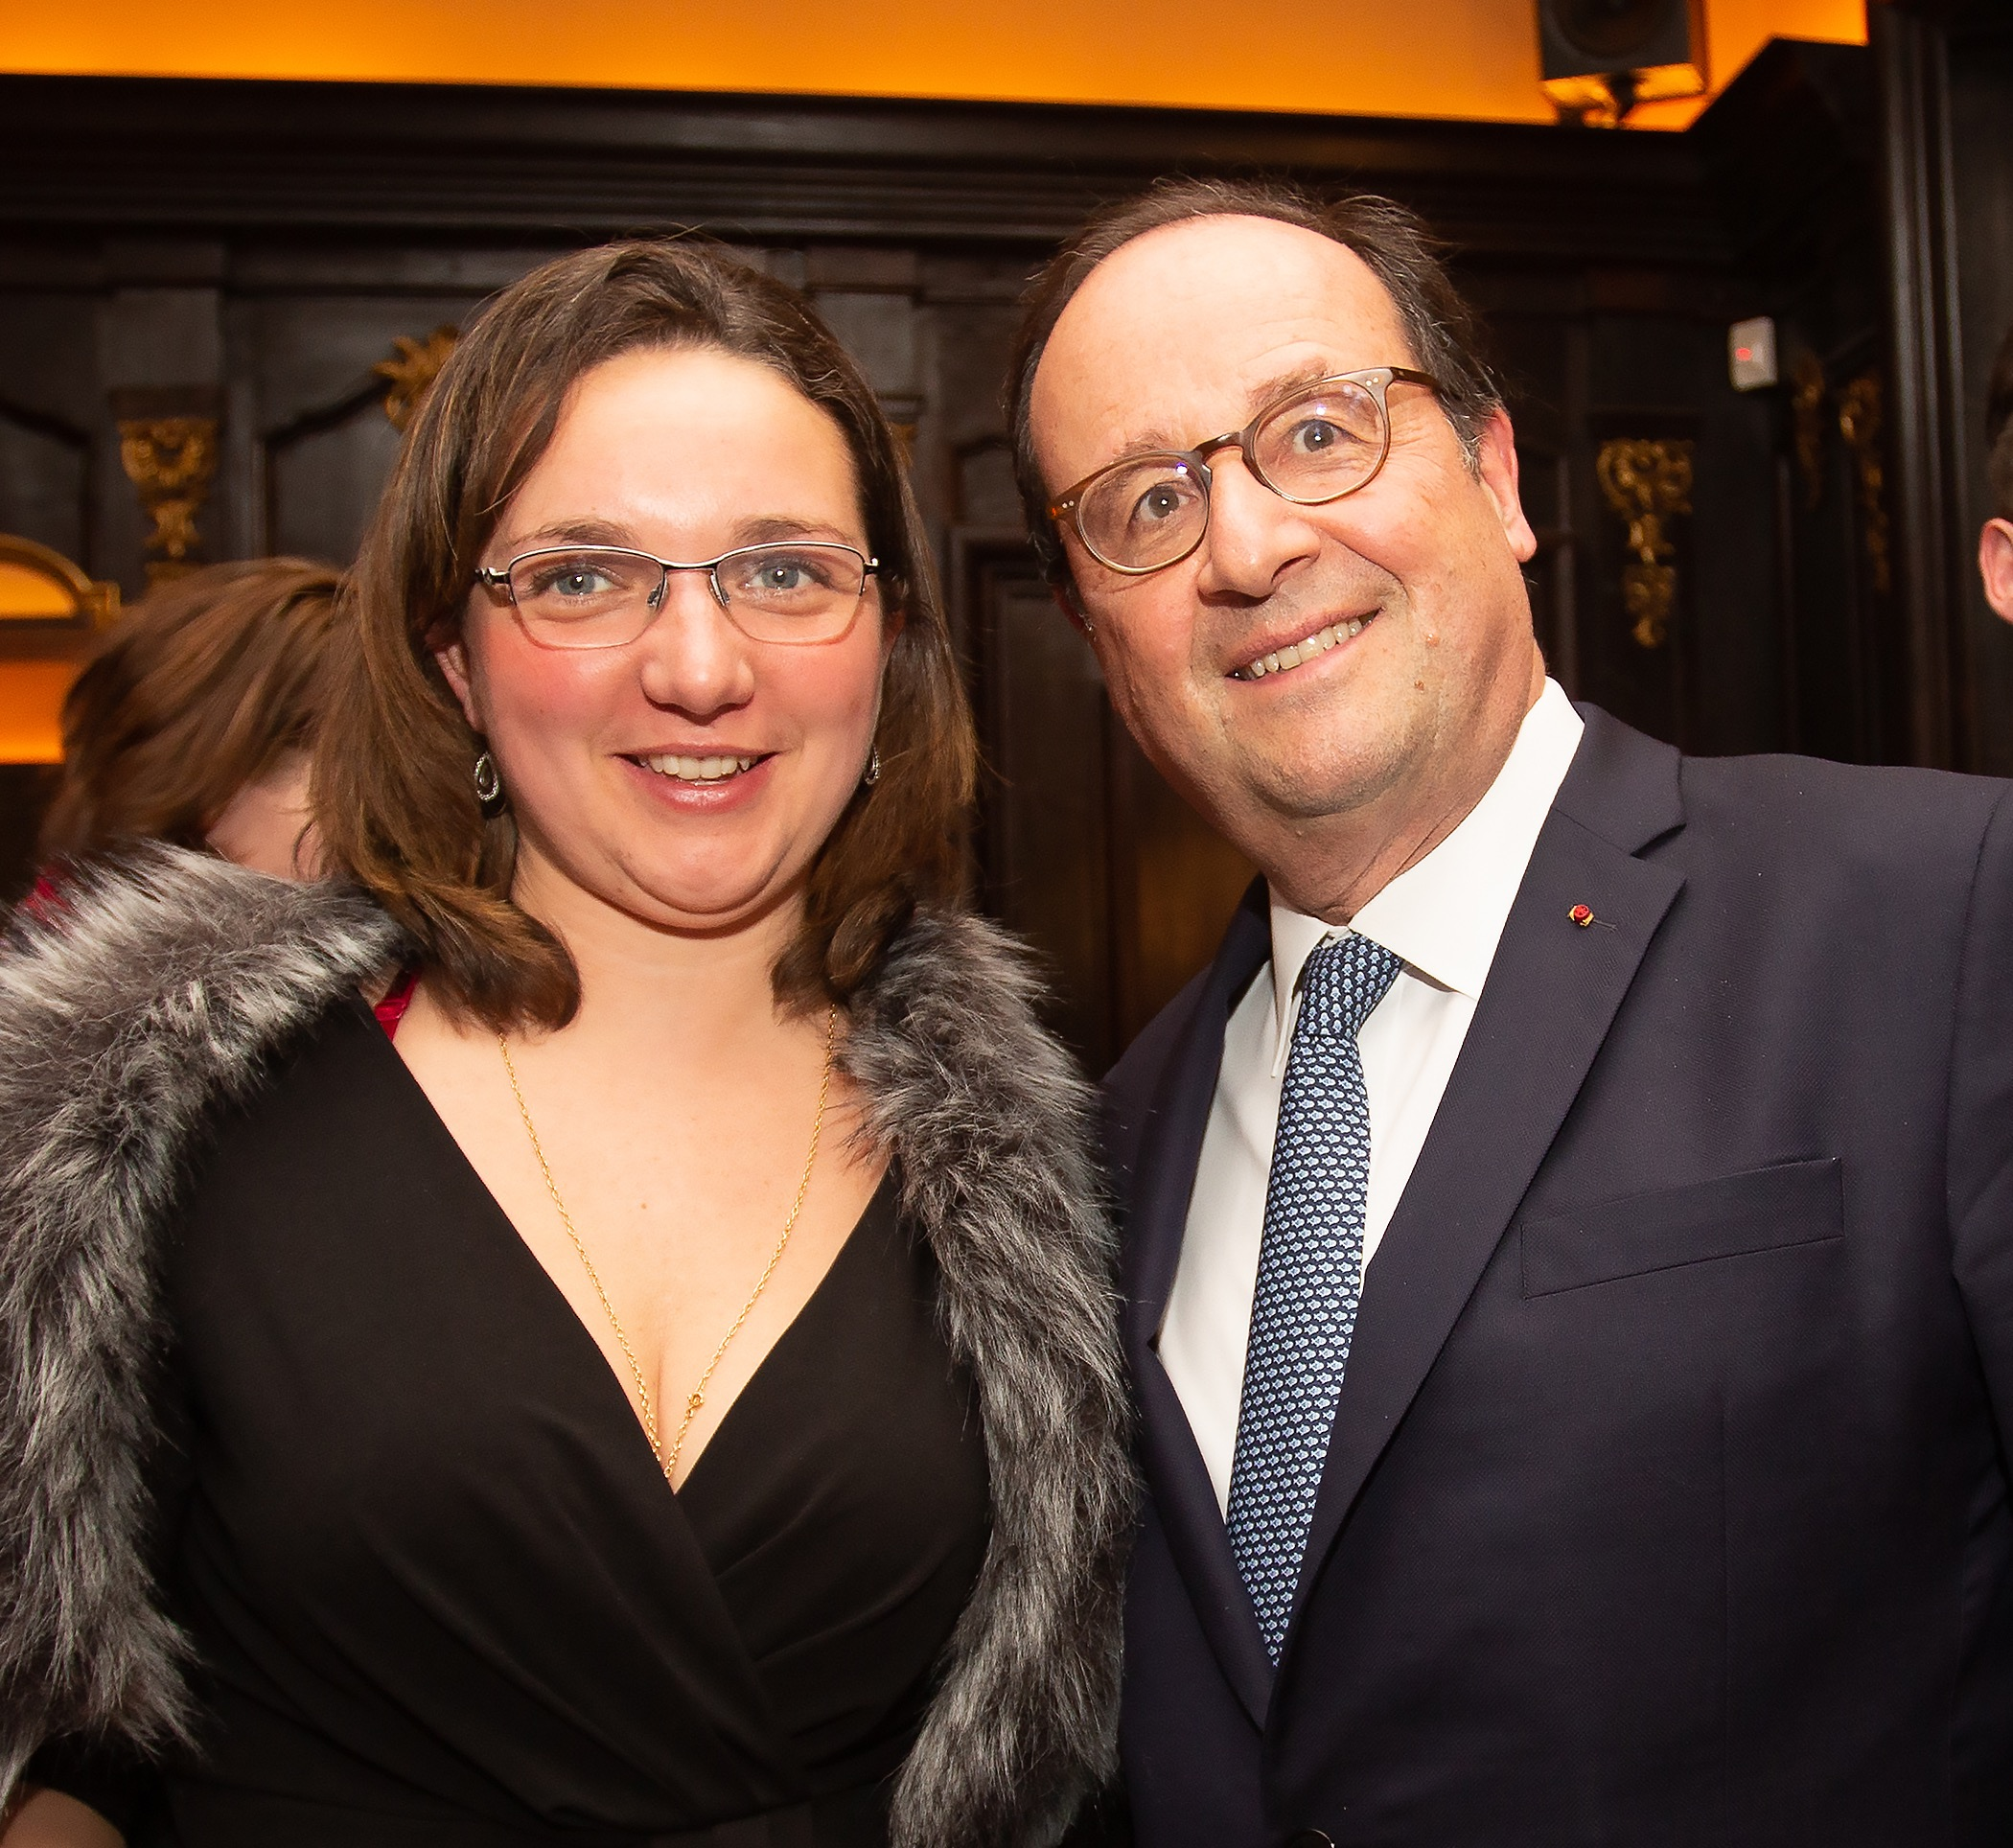 Former President of the French Republic François Hollande with FACCNE volunteer Claire Dorin at the French Cultural Center on March 10, 2019